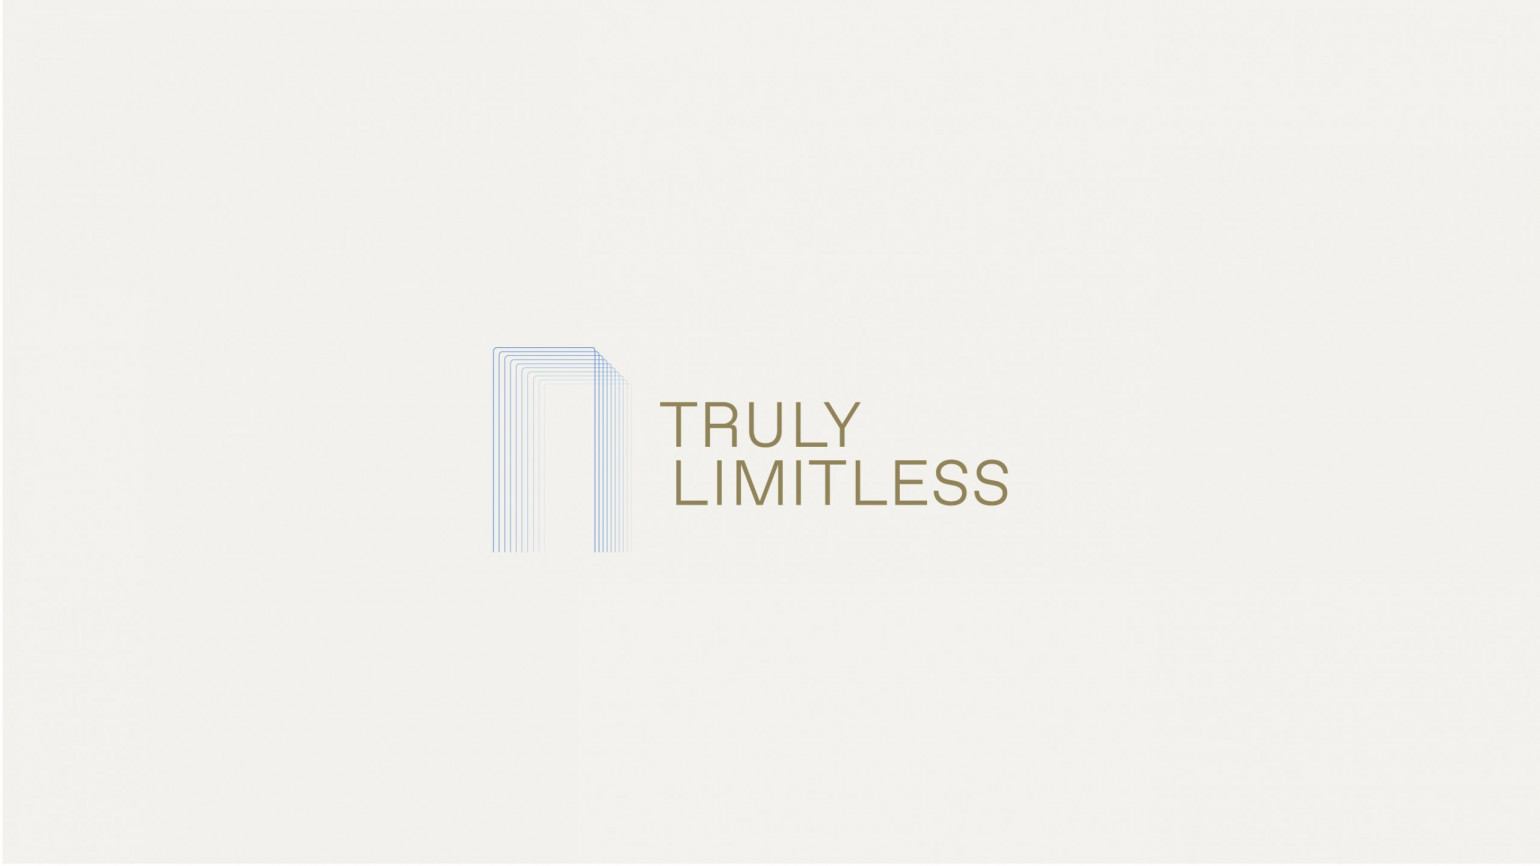 TRULY LIMITLESS